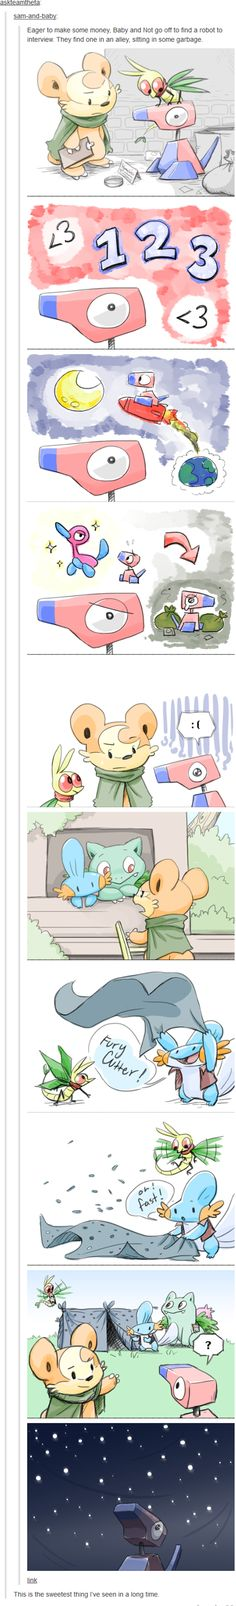 Helping Porygon live its dreams. <3